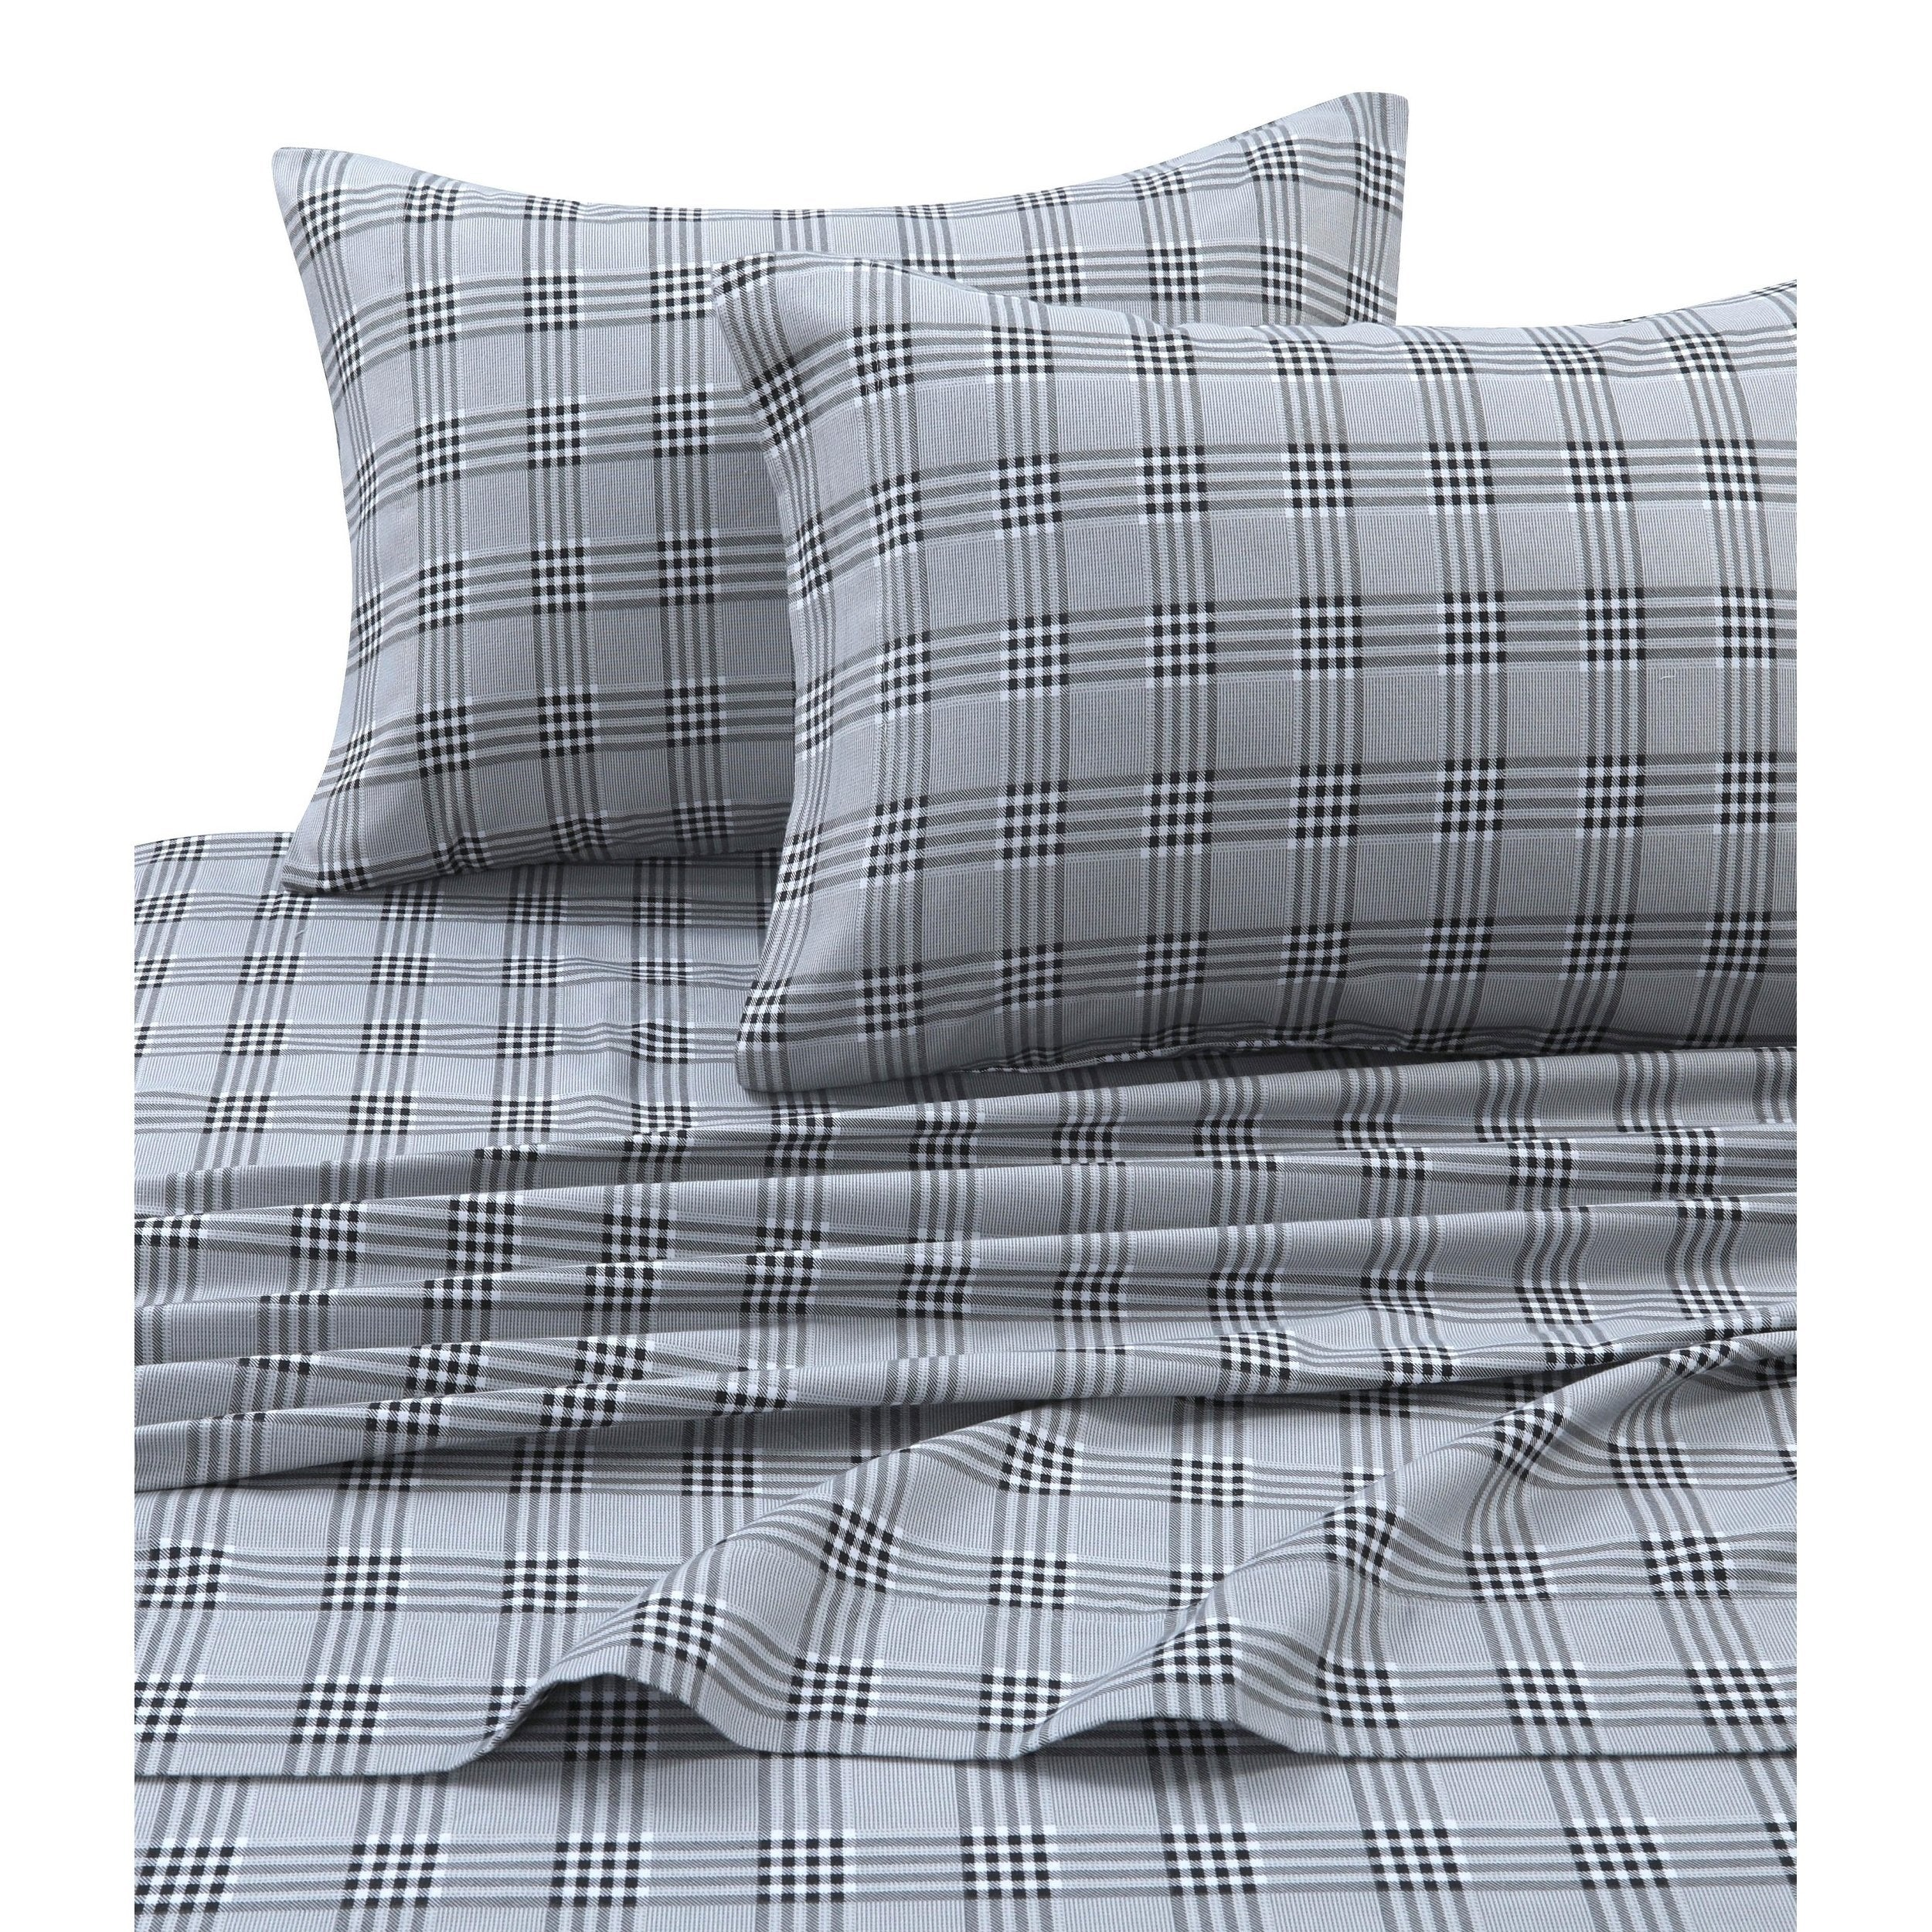 Teen Charleston Plaid Sheet Set Checkered Bedding Oversized Flat Bed Sheets Soft Cozy Stripe Gorgeous Extra